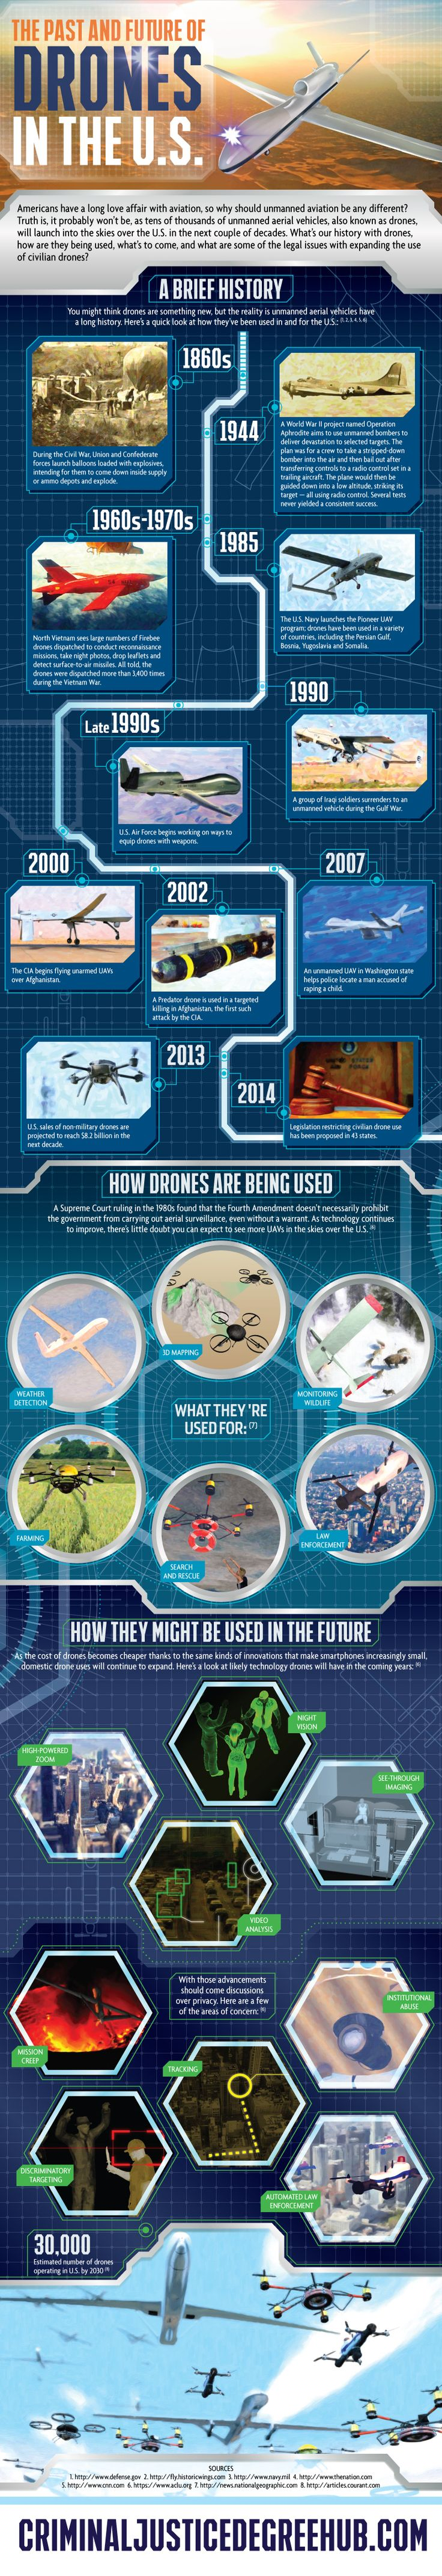 The Past and Future of Drones in the U.S.www.pyrotherm.gr FIRE PROTECTION ΠΥΡΟΣΒΕΣΤΙΚΑ 36 ΧΡΟΝΙΑ ΠΥΡΟΣΒΕΣΤΙΚΑ 36 YEARS IN FIRE PROTECTION FIRE - SECURITY ENGINEERS & CONTRACTORS REFILLING - SERVICE - SALE OF FIRE EXTINGUISHERS www.pyrotherm.gr www.pyrosvestika.com www.fireextinguis... www.pyrosvestires.eu www.pyrosvestires...